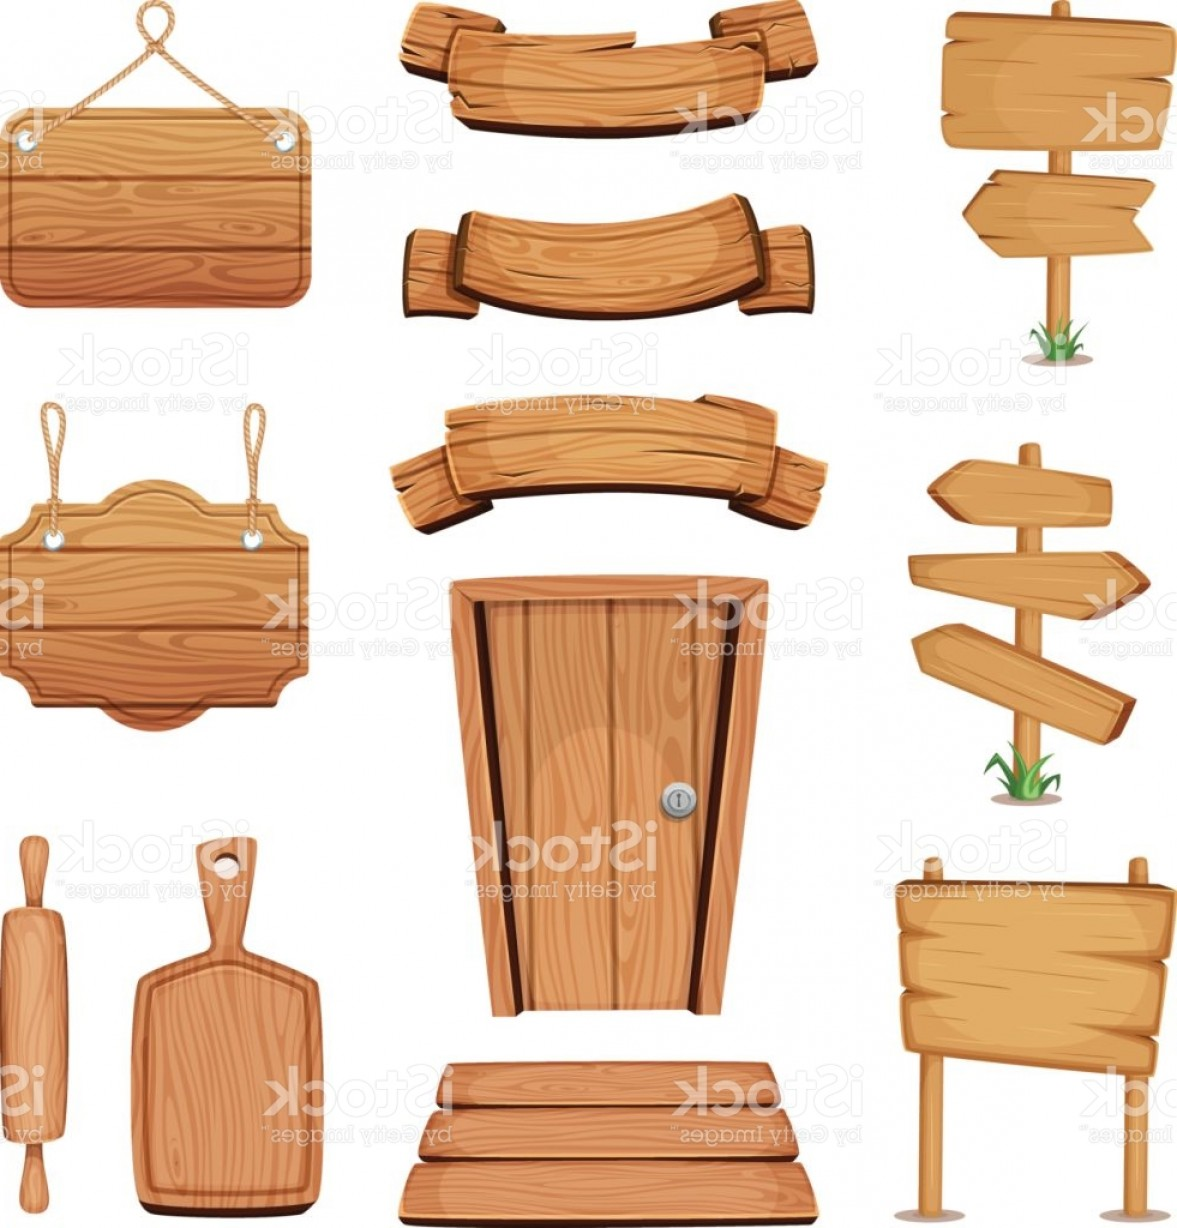 Sign Shapes Vector Art: Vector Illustration Of Wooden Signboards Doors Plates And Other Different Shapes Gm